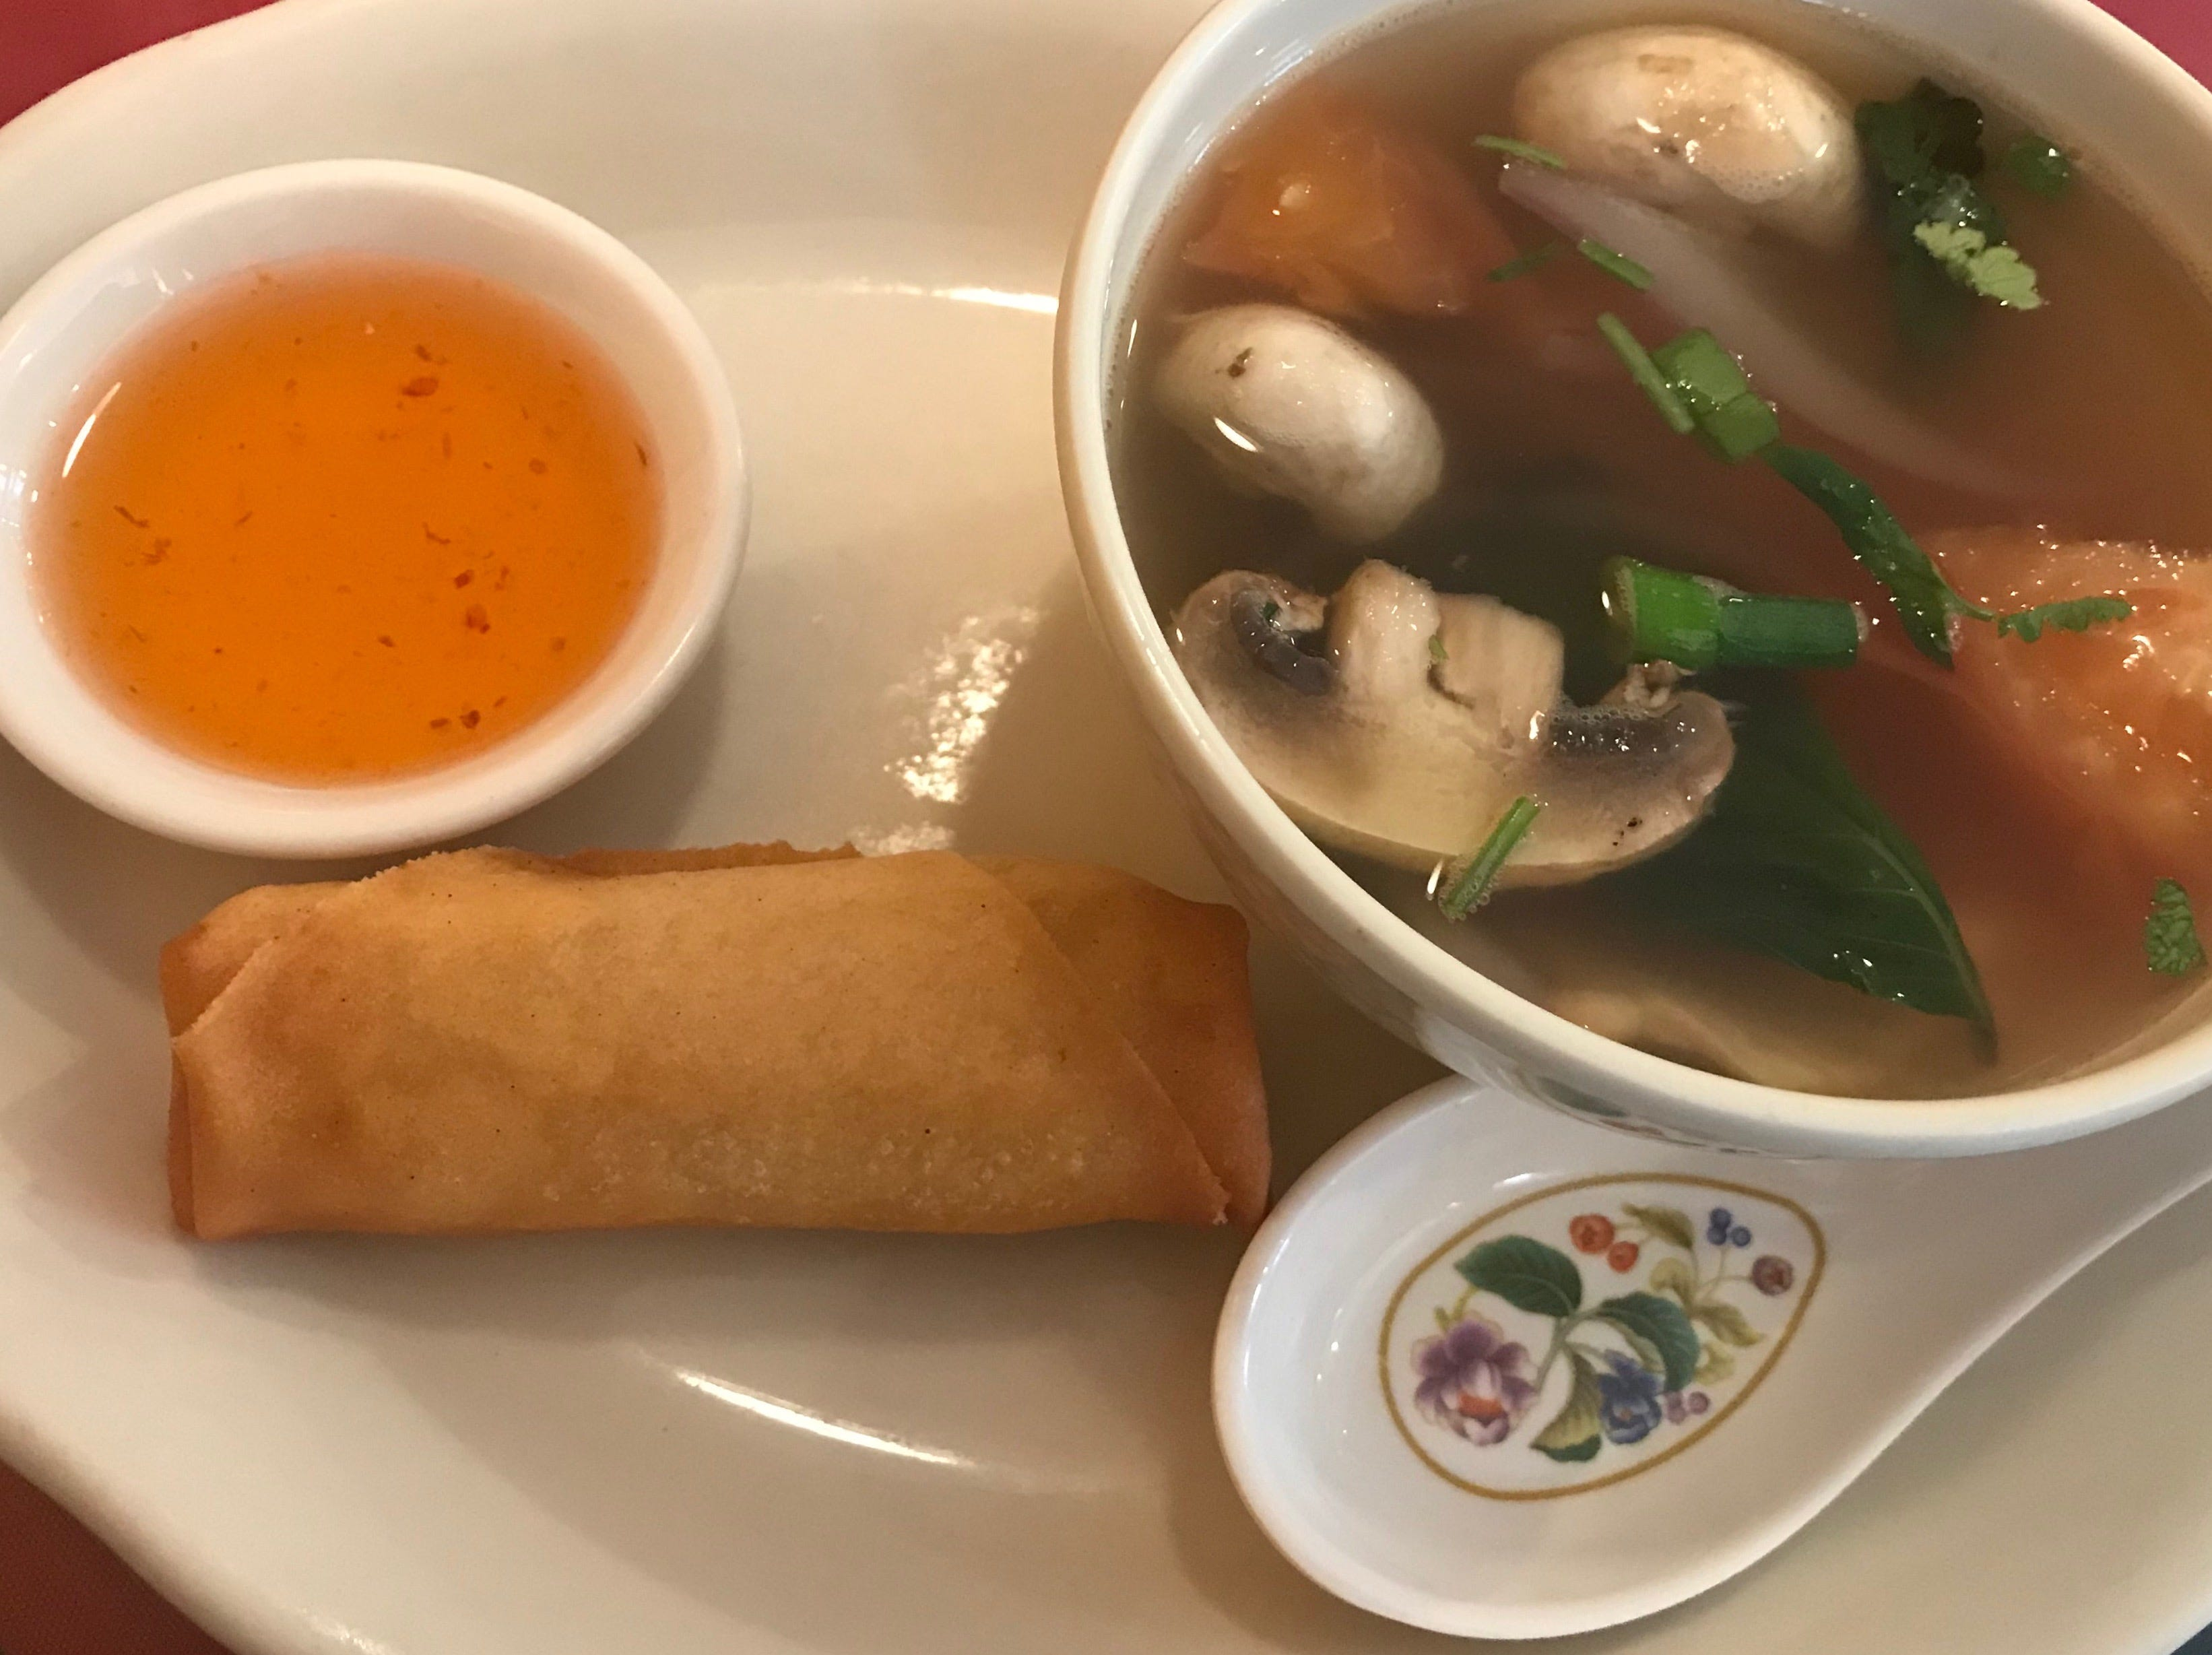 Zuzap Signature Soup, an herb soup with a tang to it, and an egg roll were the appetizer portion of a lunch special at Zuzap Thai Cuisine in Clive.